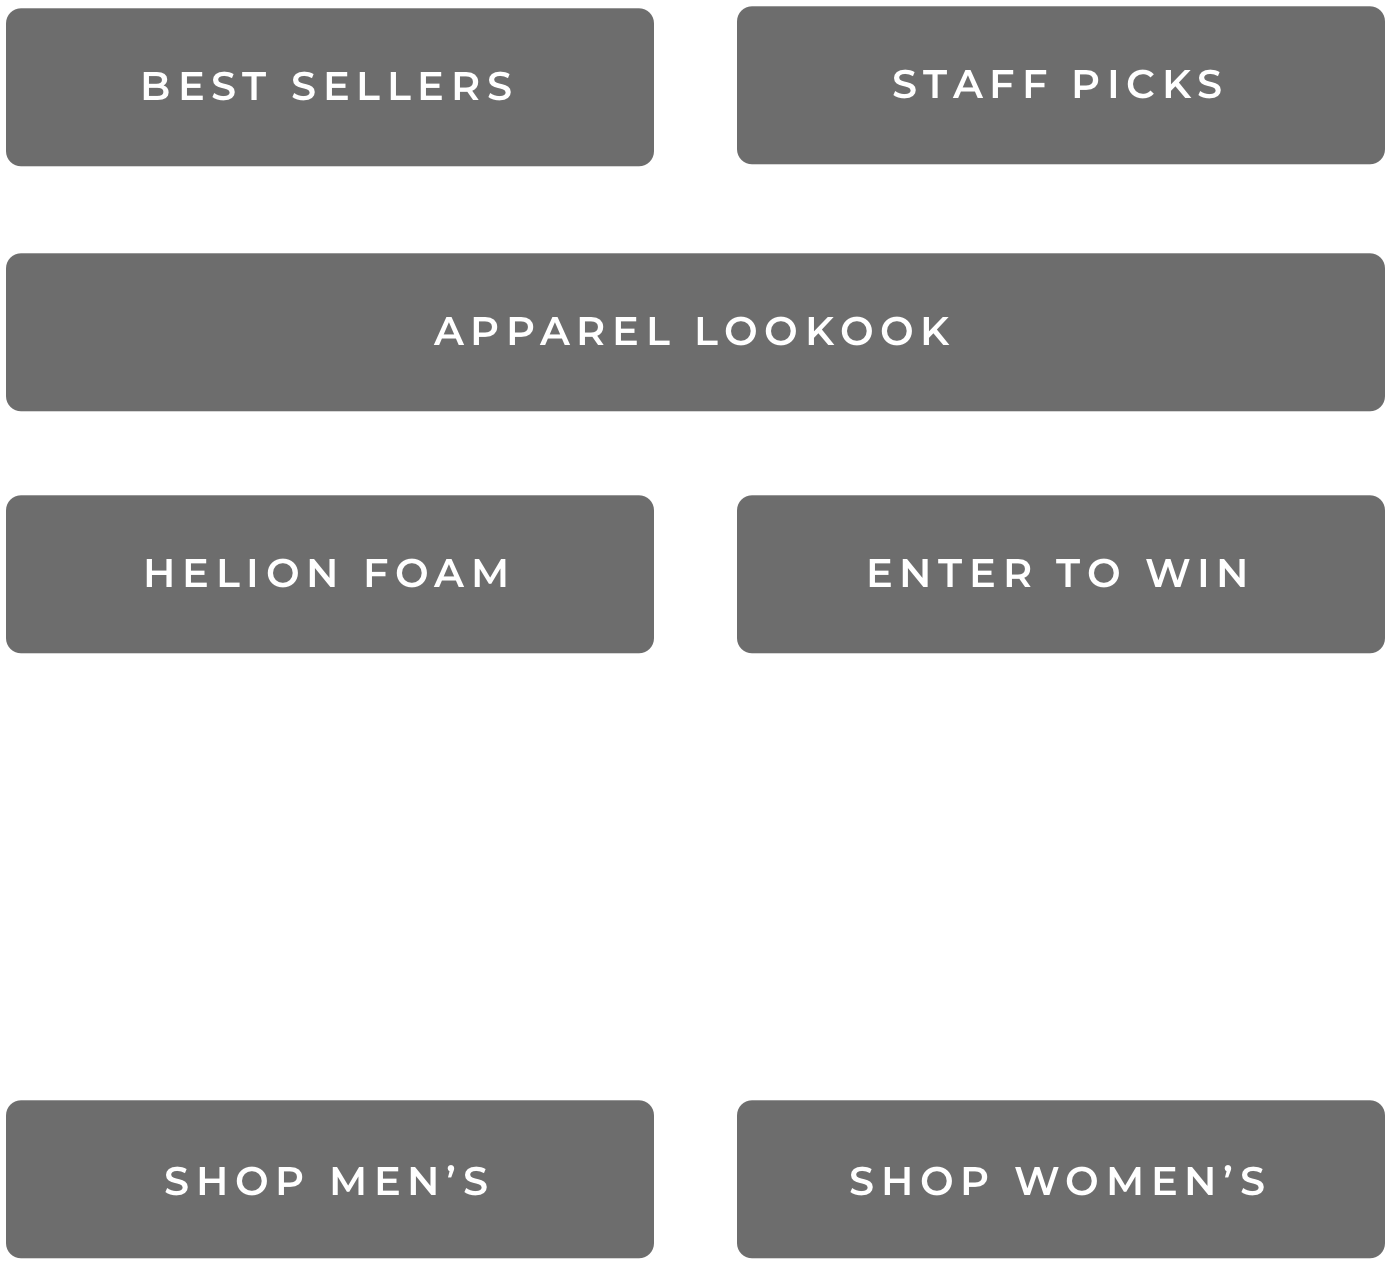 Best Sellers - Staff Picks - Apparel Lookbook - Helion Foam - Enter to Win - Shop Men's - Shop Women's